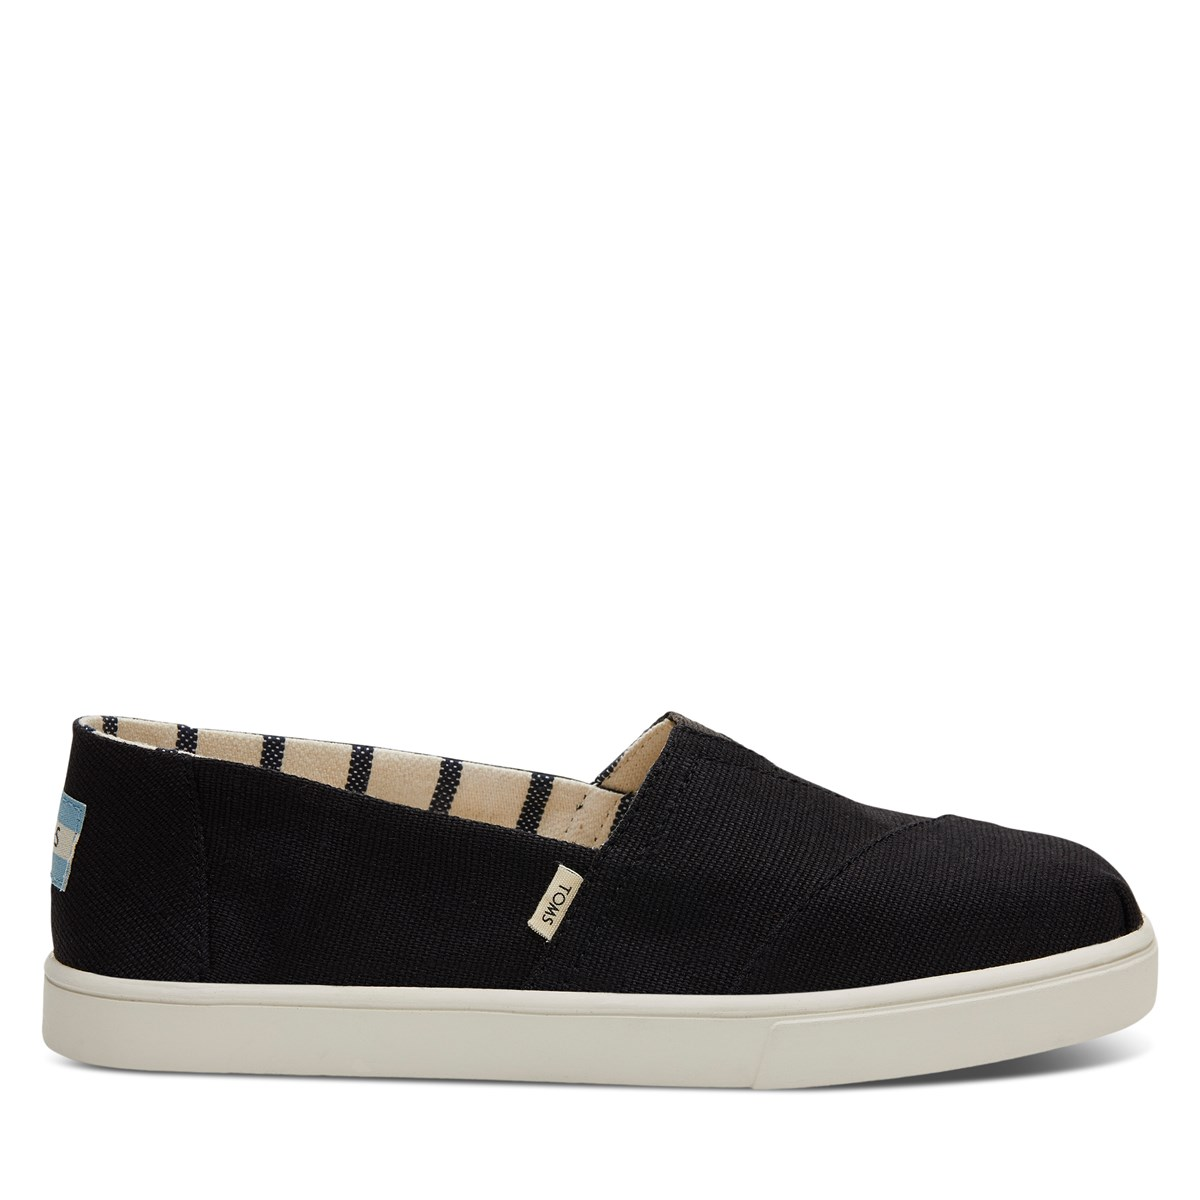 Women's Alpargata Slip-Ons in Black